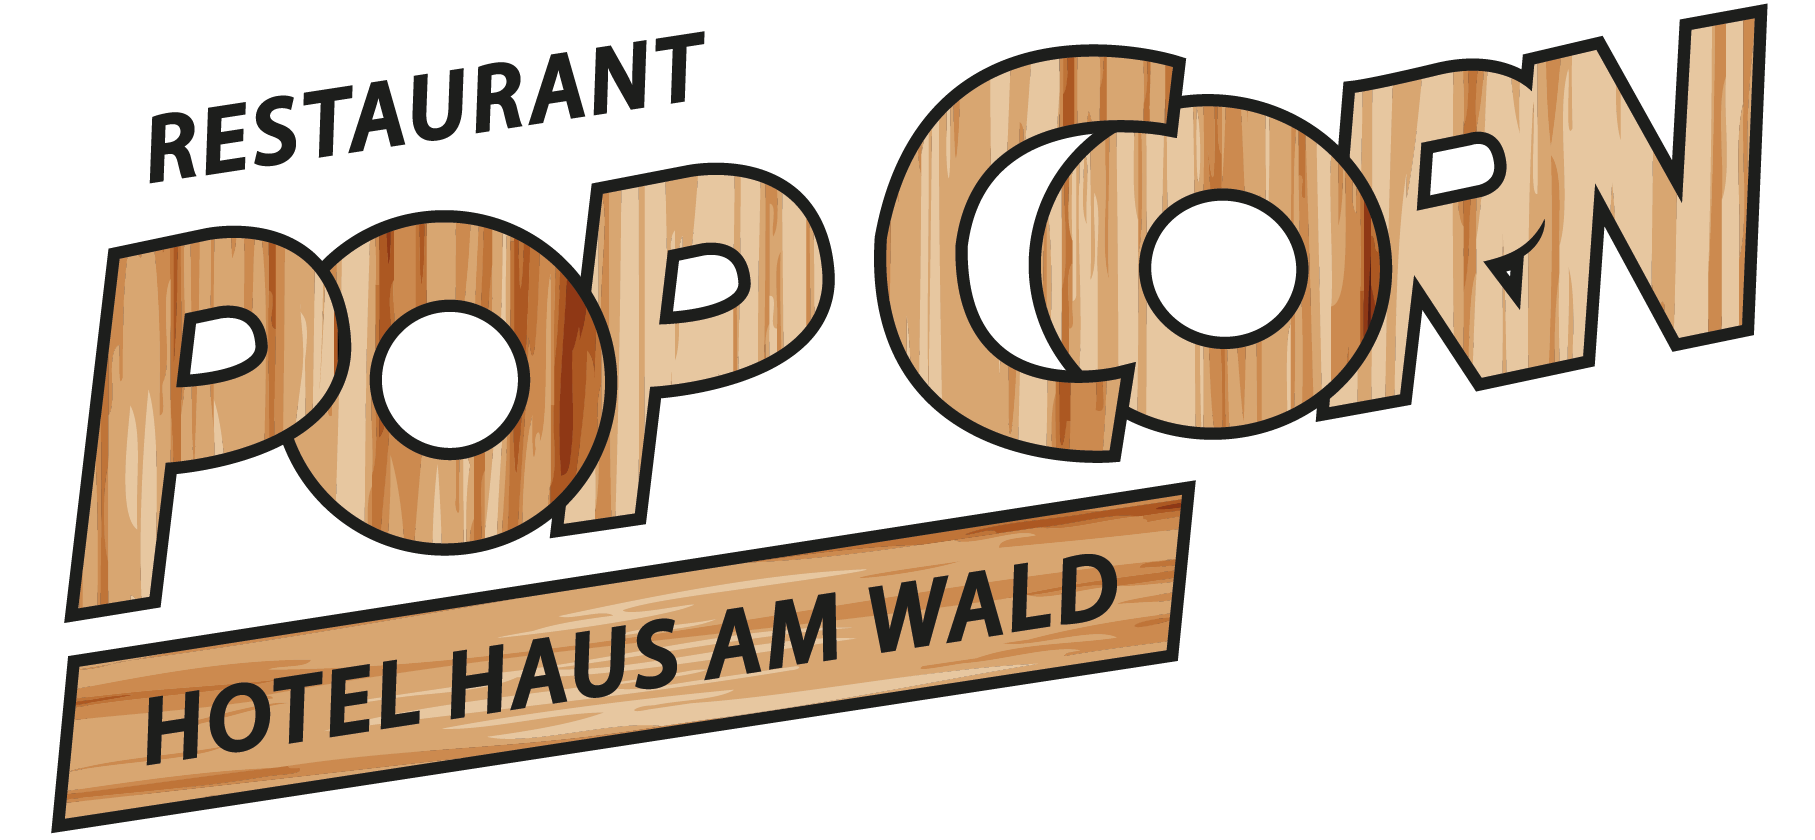 hotel haus am wald restaurant pop corn arosa